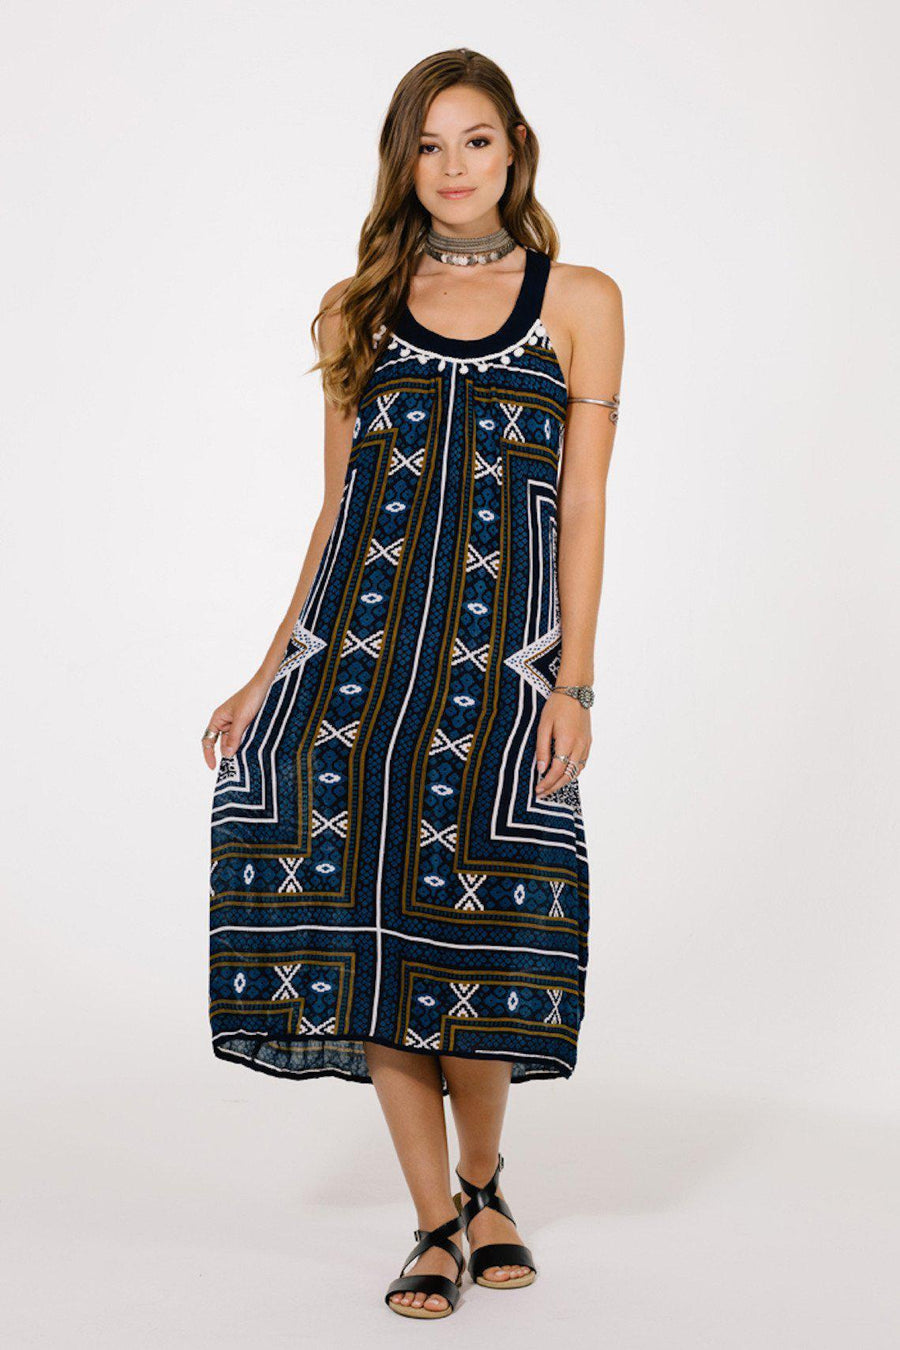 Riviera Maya Midi Dress Women - Apparel - Dresses - Casual Tigerlily and Me